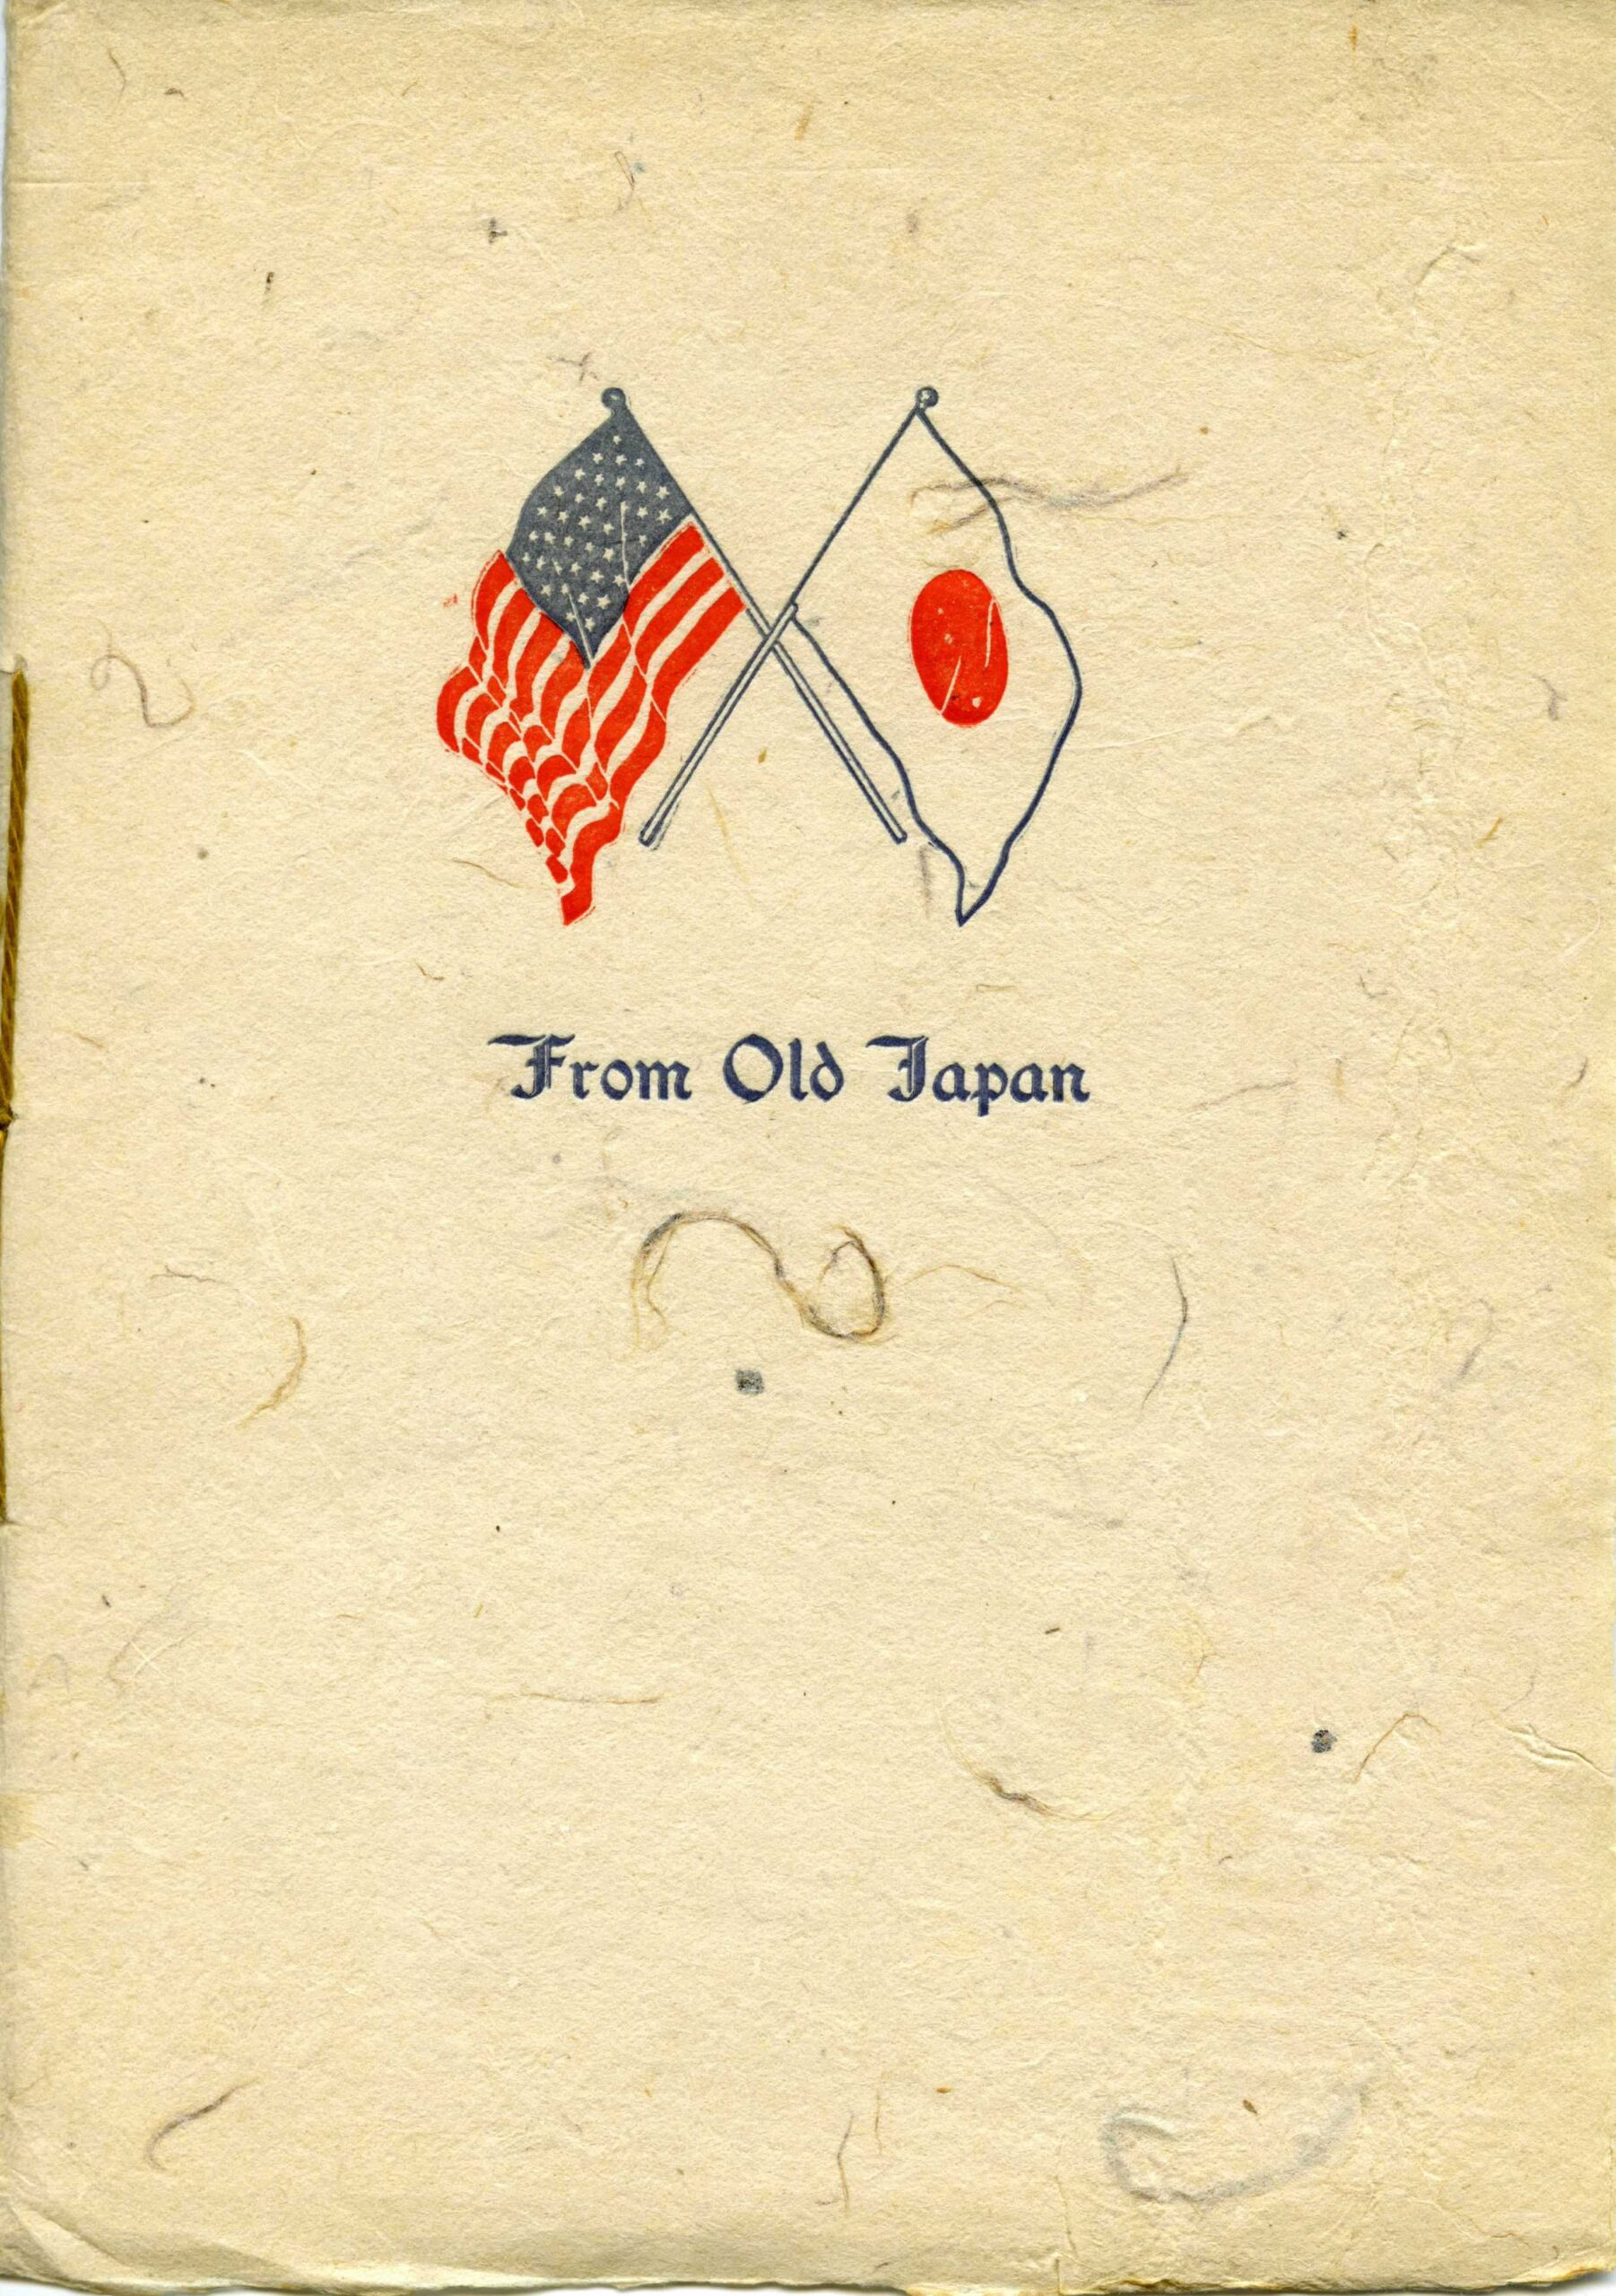 Old Japanese Booklet with American and Japanese flags intertwined